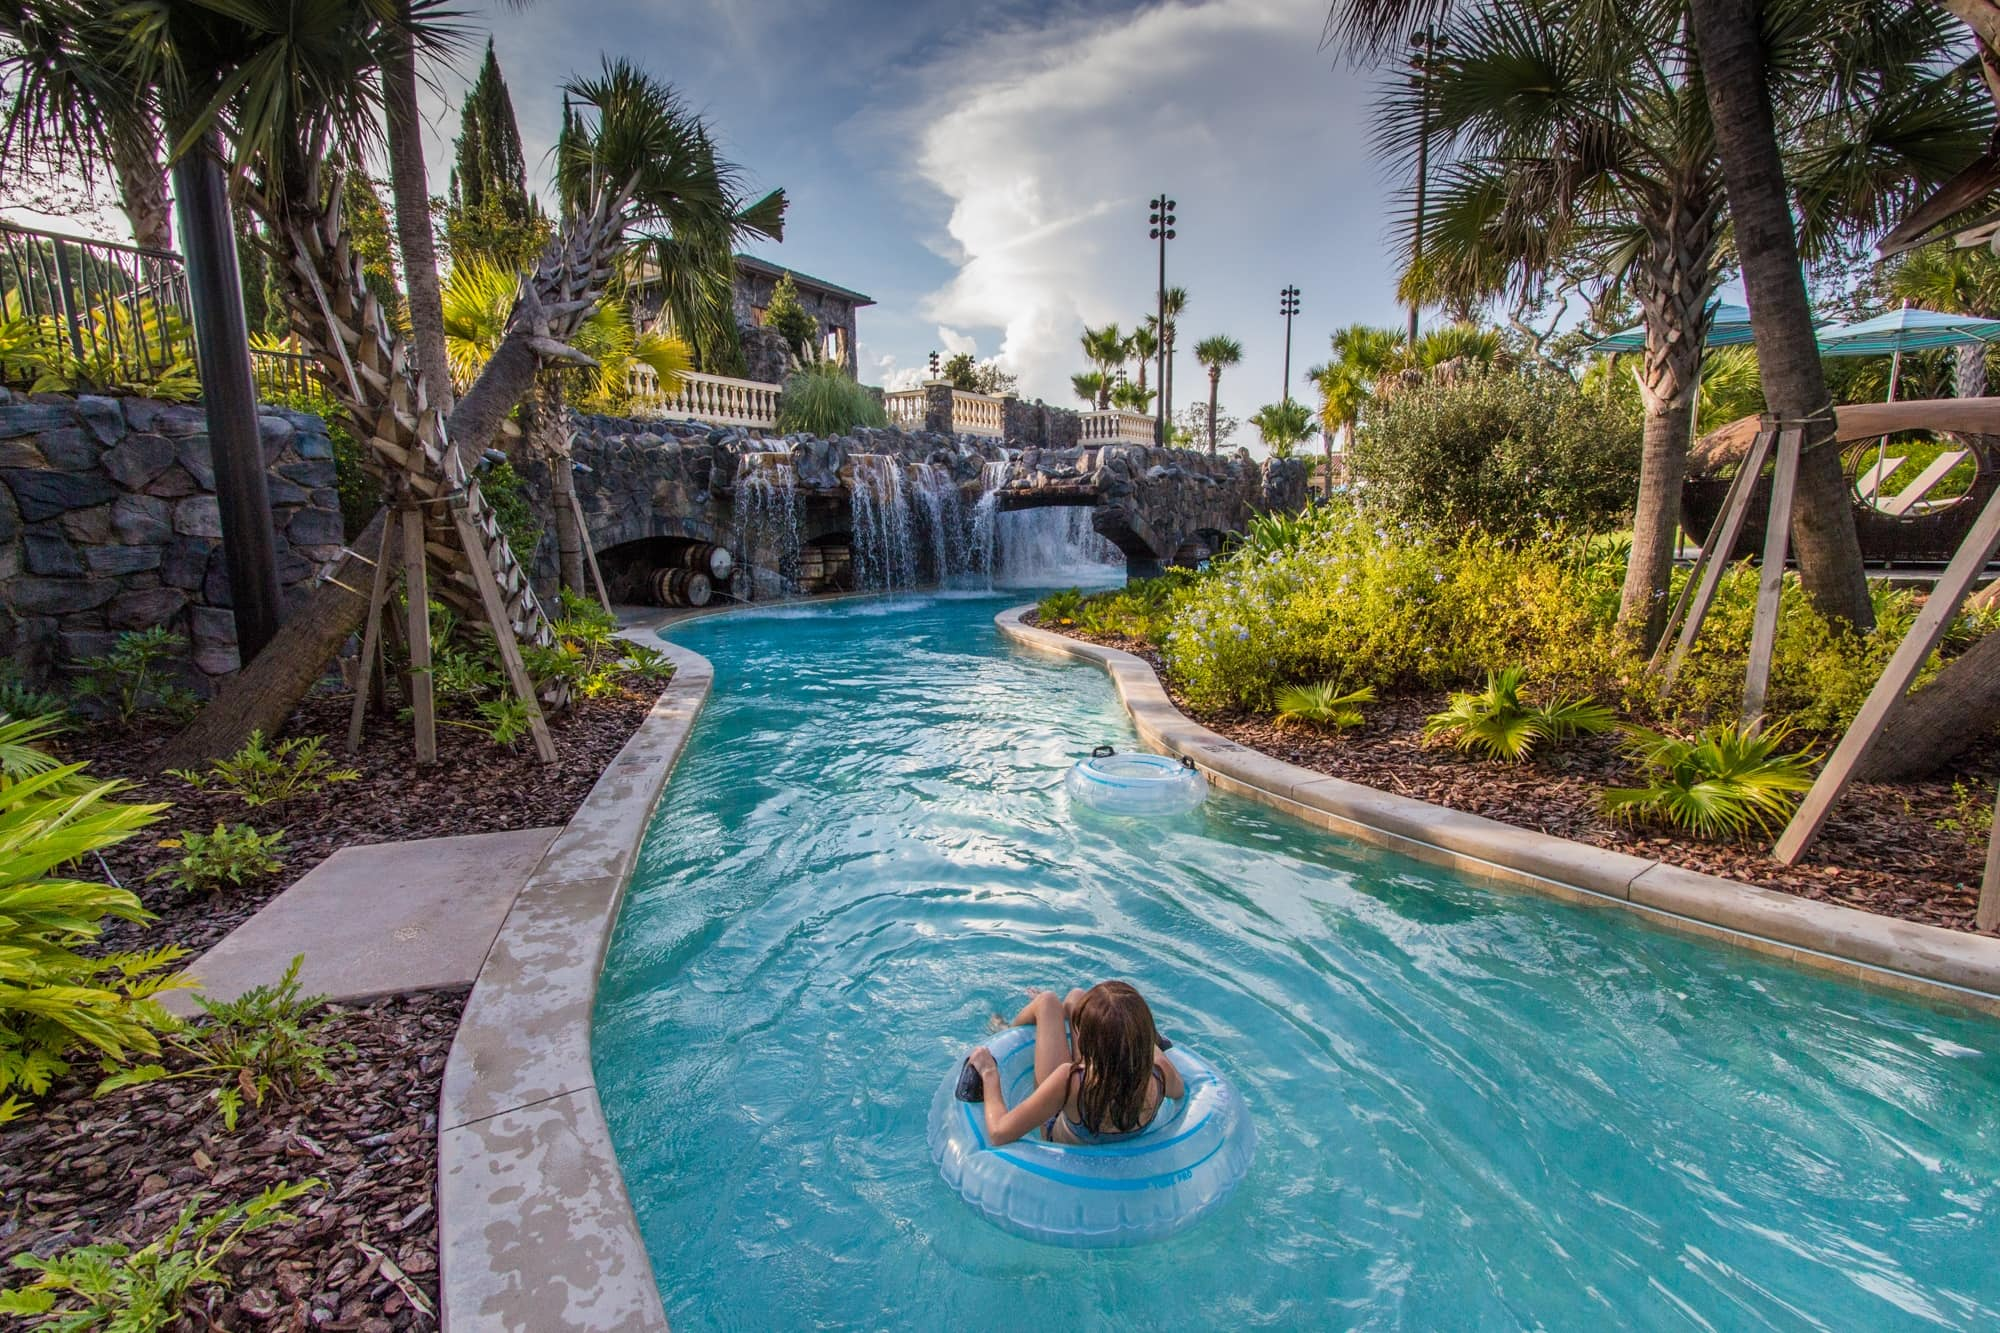 e9e5b0a4ef The lazy river at Four Seasons Orlando at Walt Disney World is so fabulous